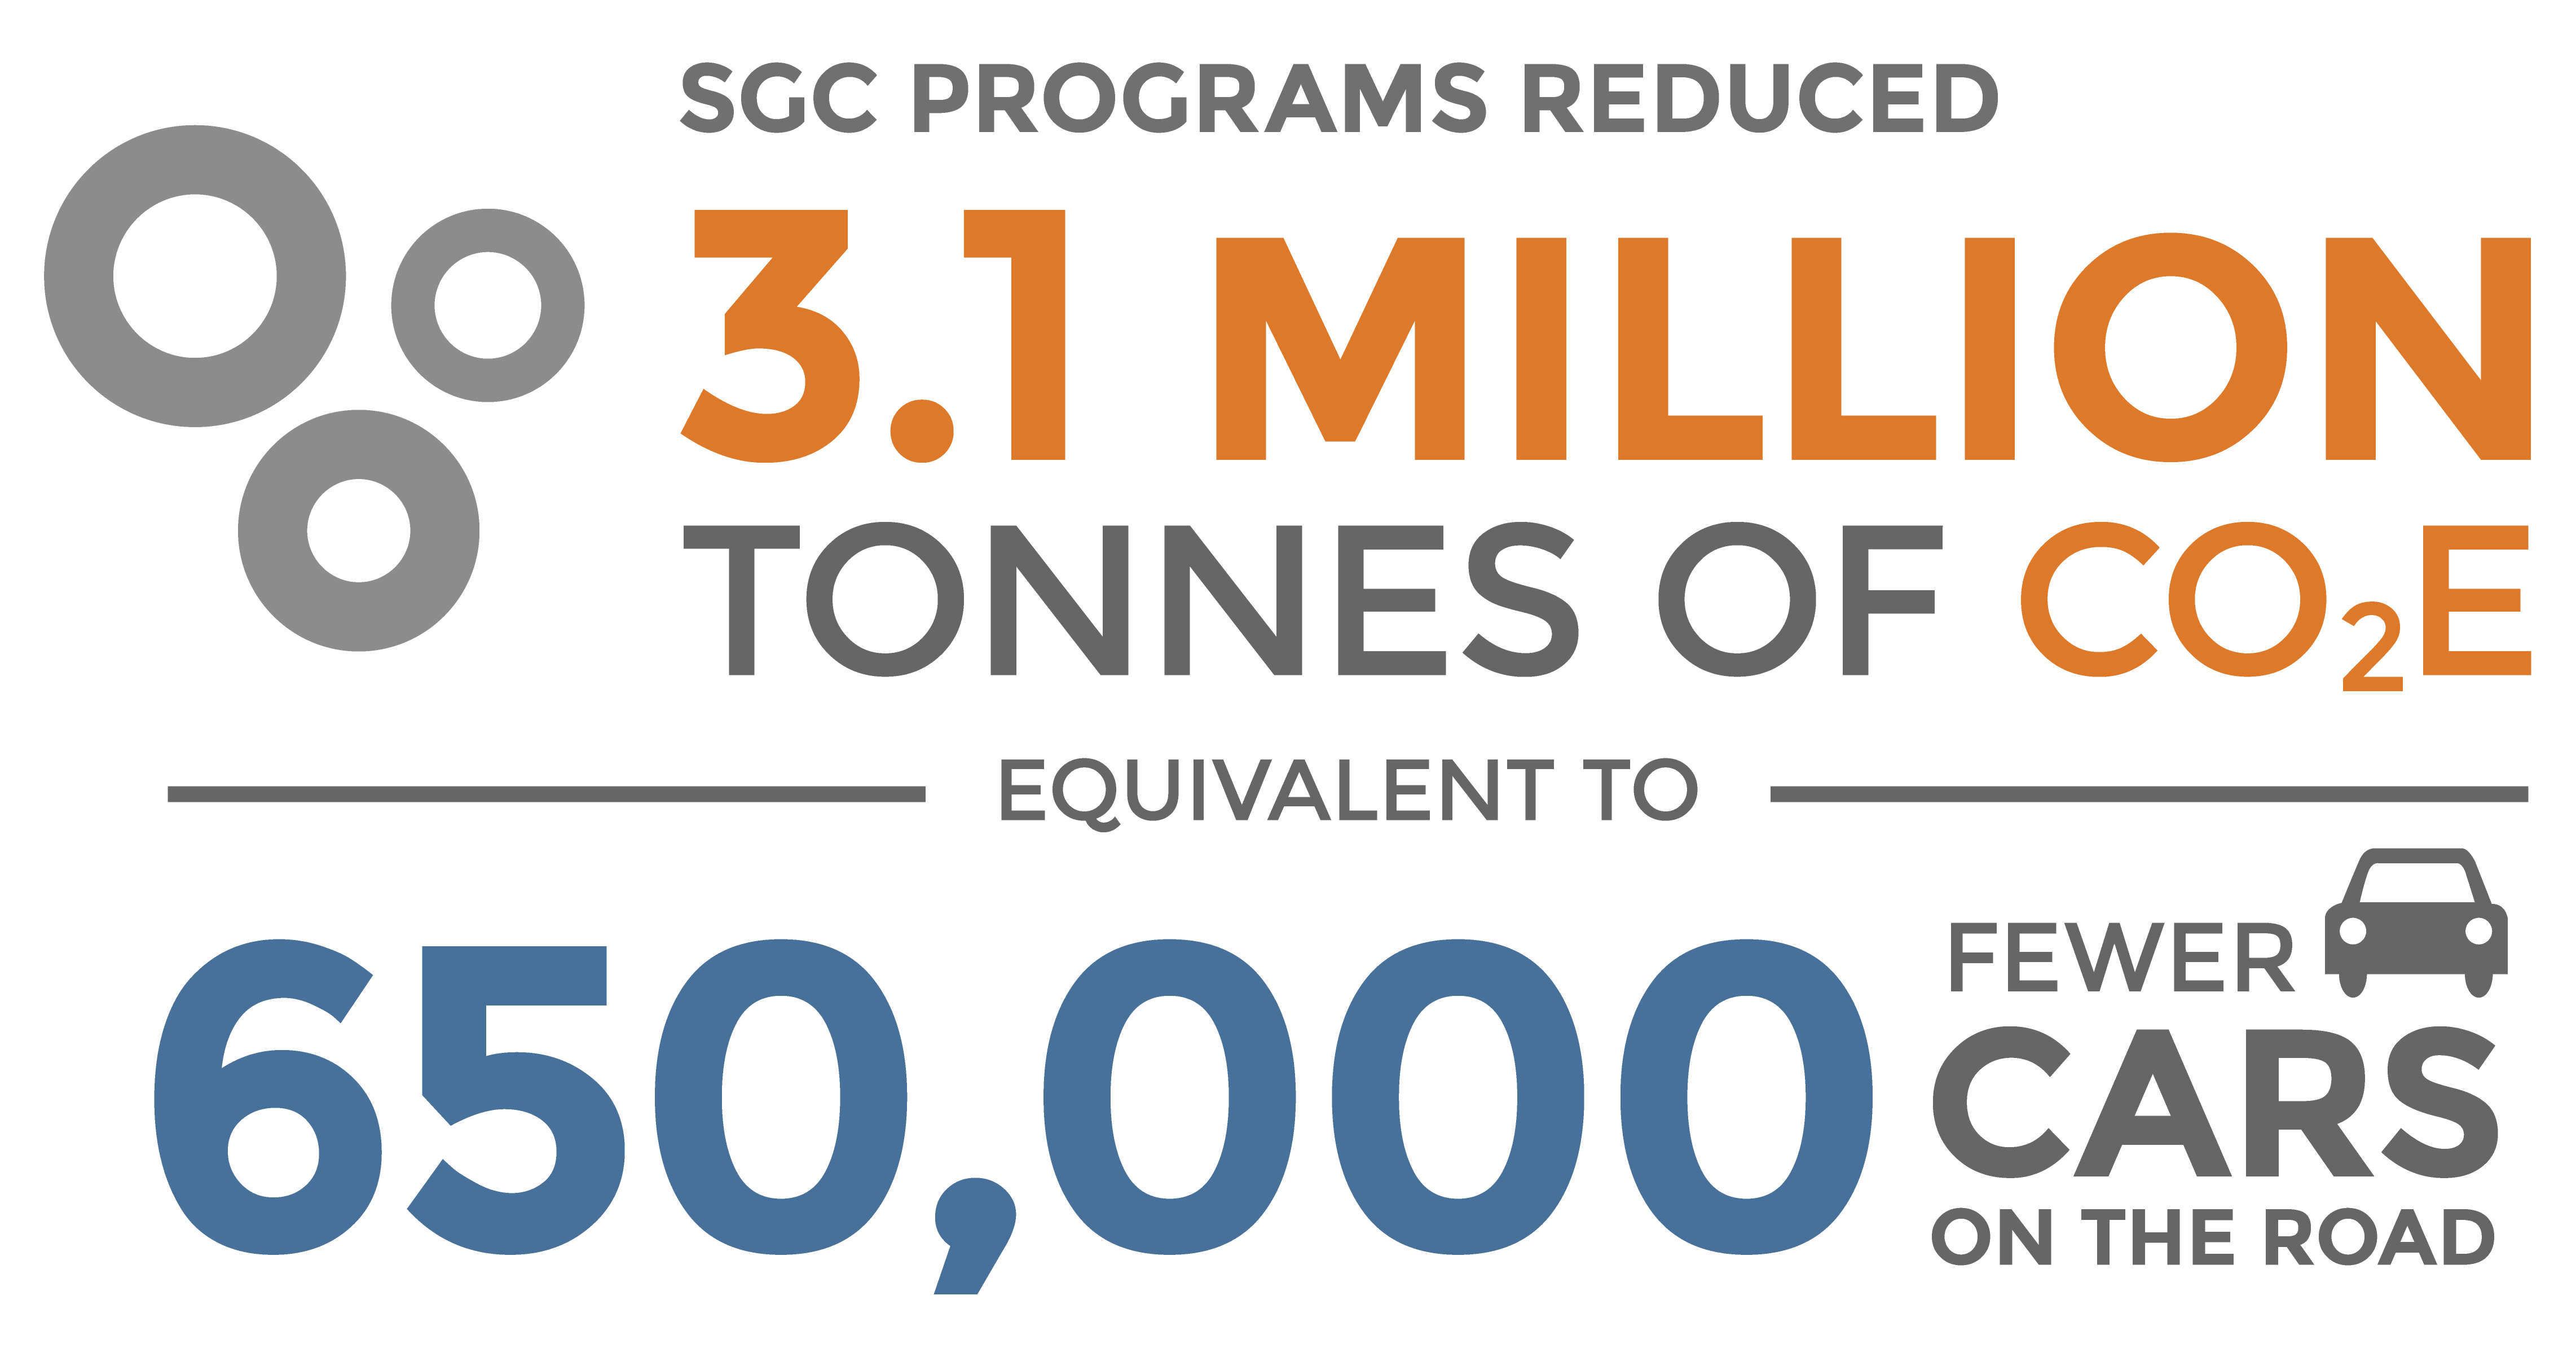 SGC programs have reduced 3.1 million tonnes of CO2E equivalent to 650,000 fewer cars on the road.